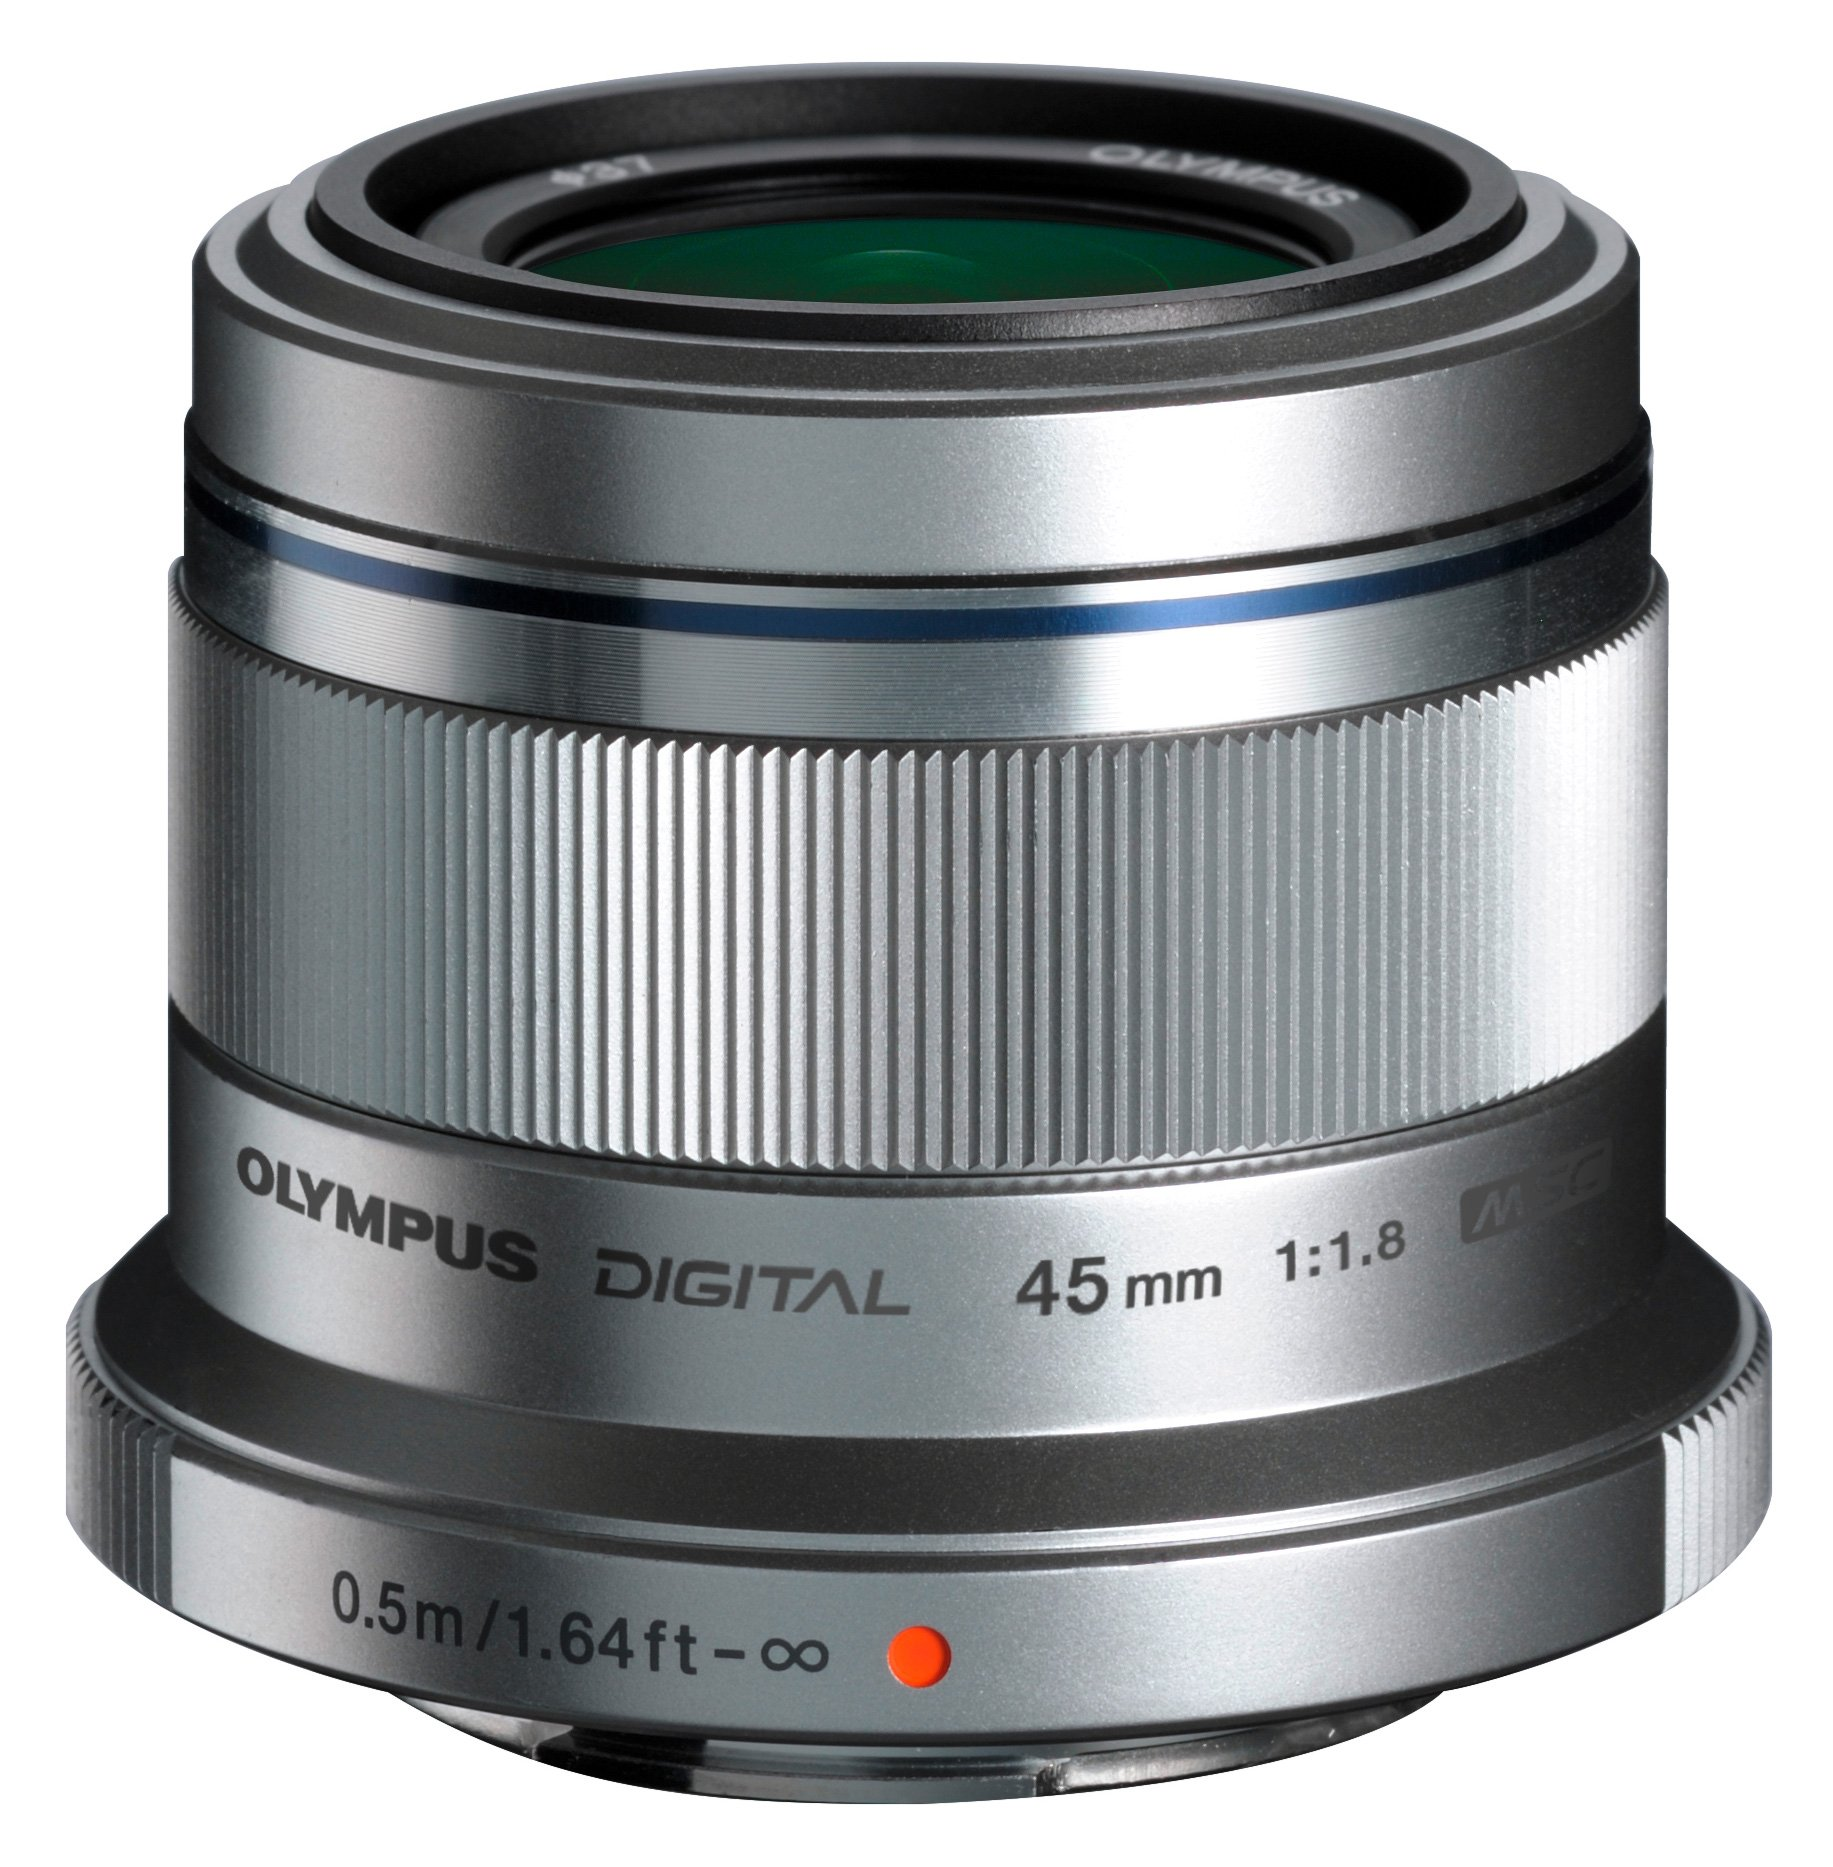 Olympus M. Zuiko Digital ED 45mm f1.8 (Silver) Lens for Micro 4/3 Cameras - International Version (No Warranty) by Olympus